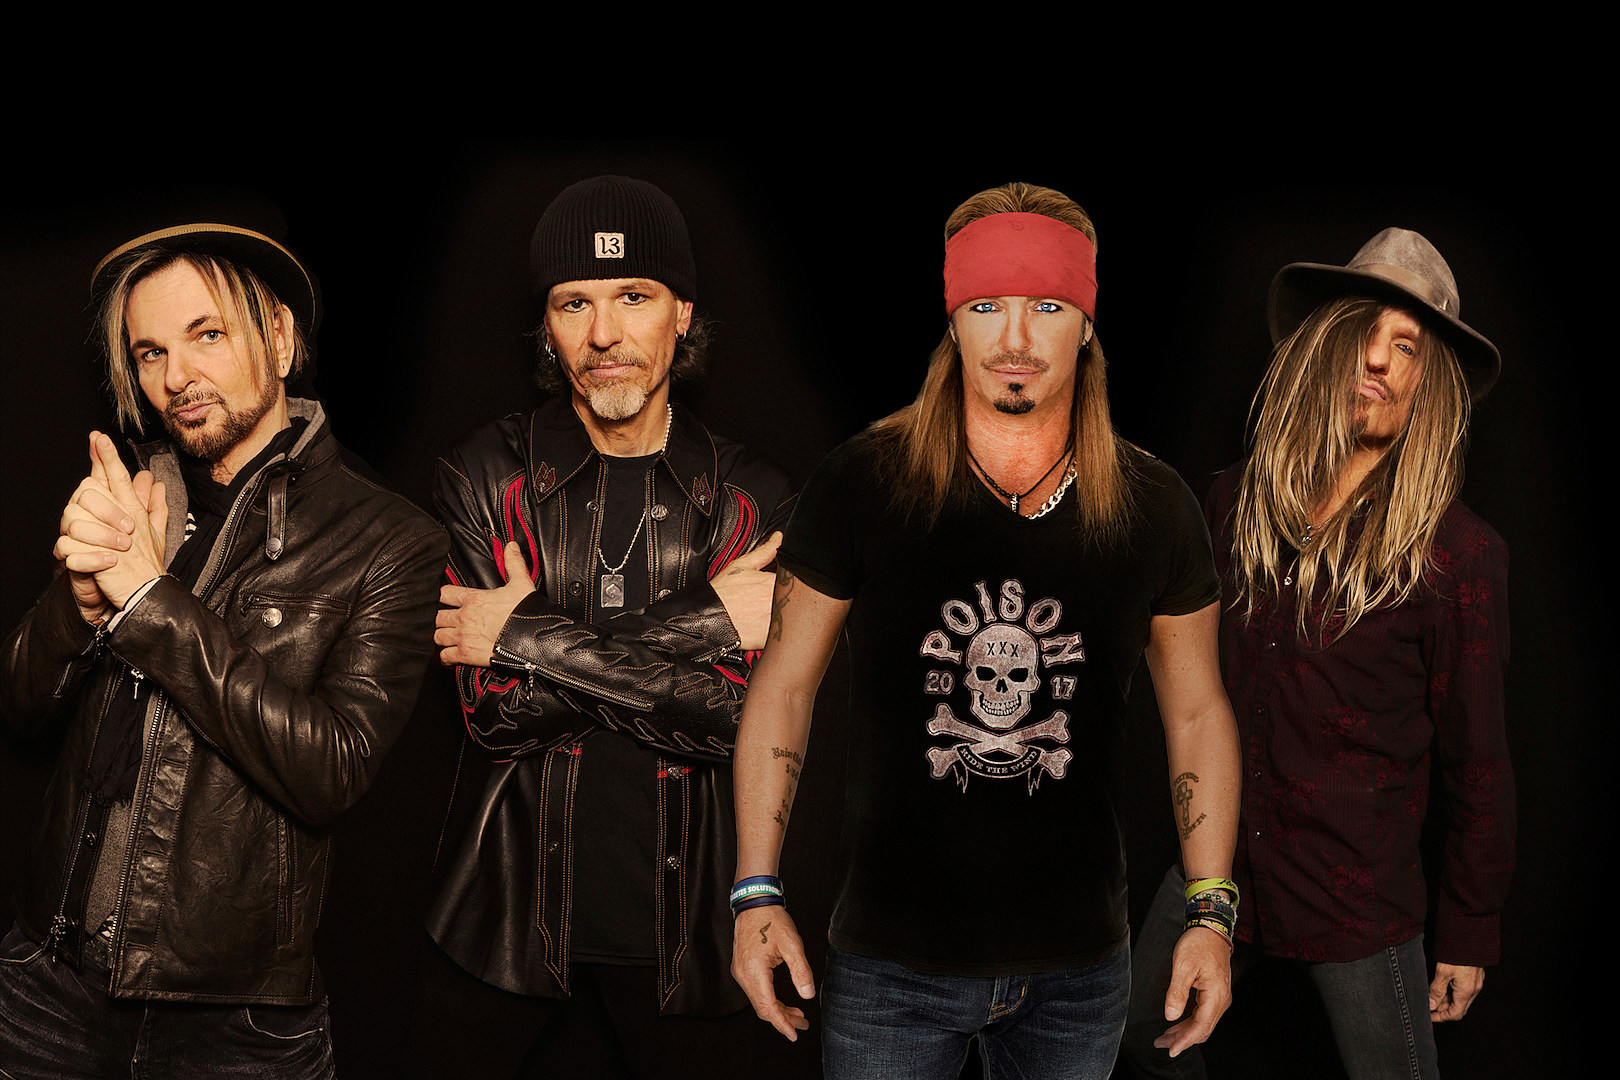 Bret Michaels Tour Dates 2020 Bret Michaels Forecasts New Poison Song + Tour in 2020